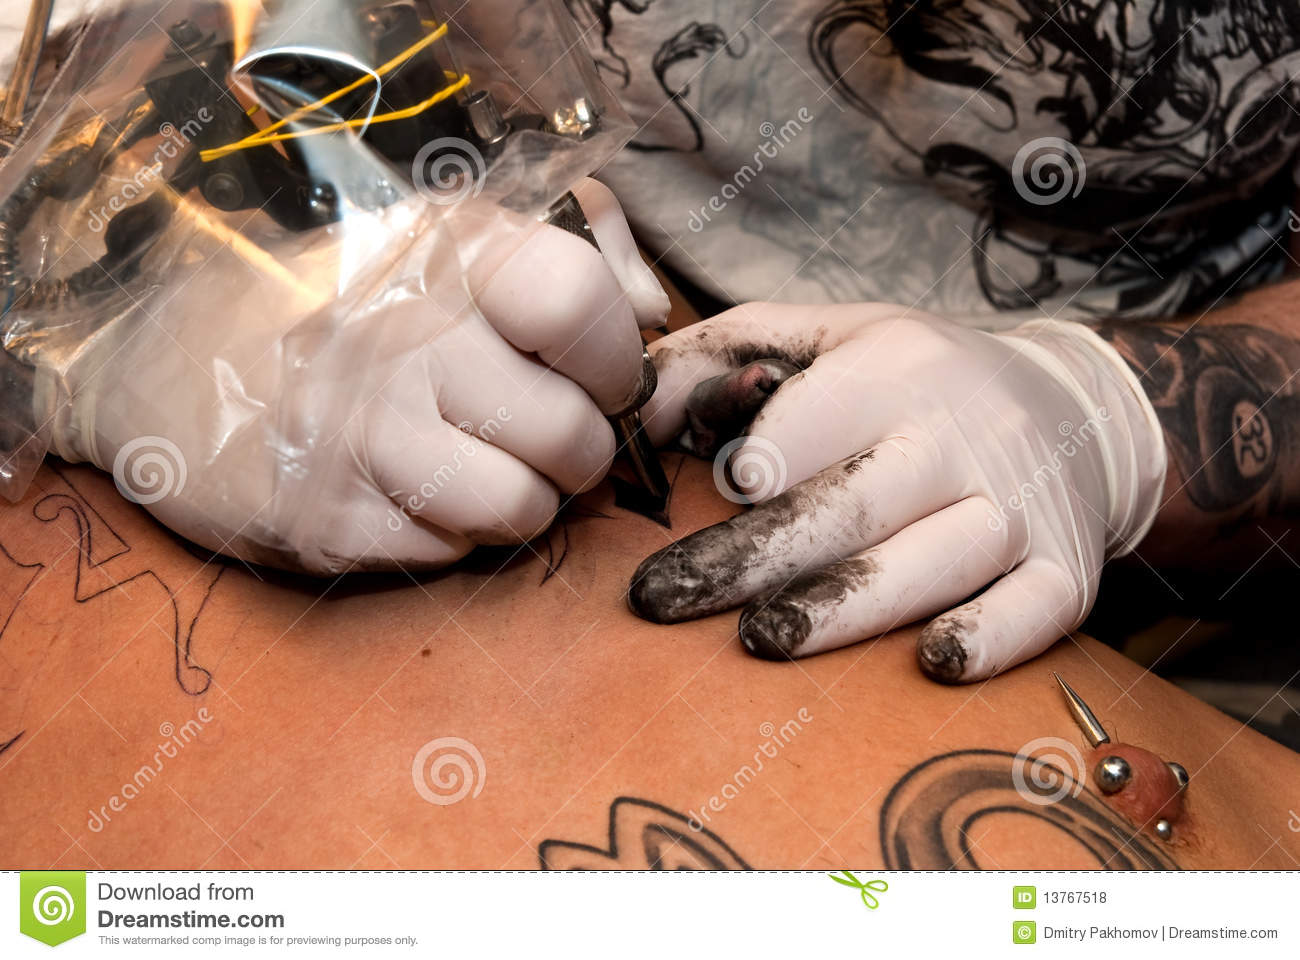 Tattooing process royalty free stock photos image 13767518 for Process of tattooing